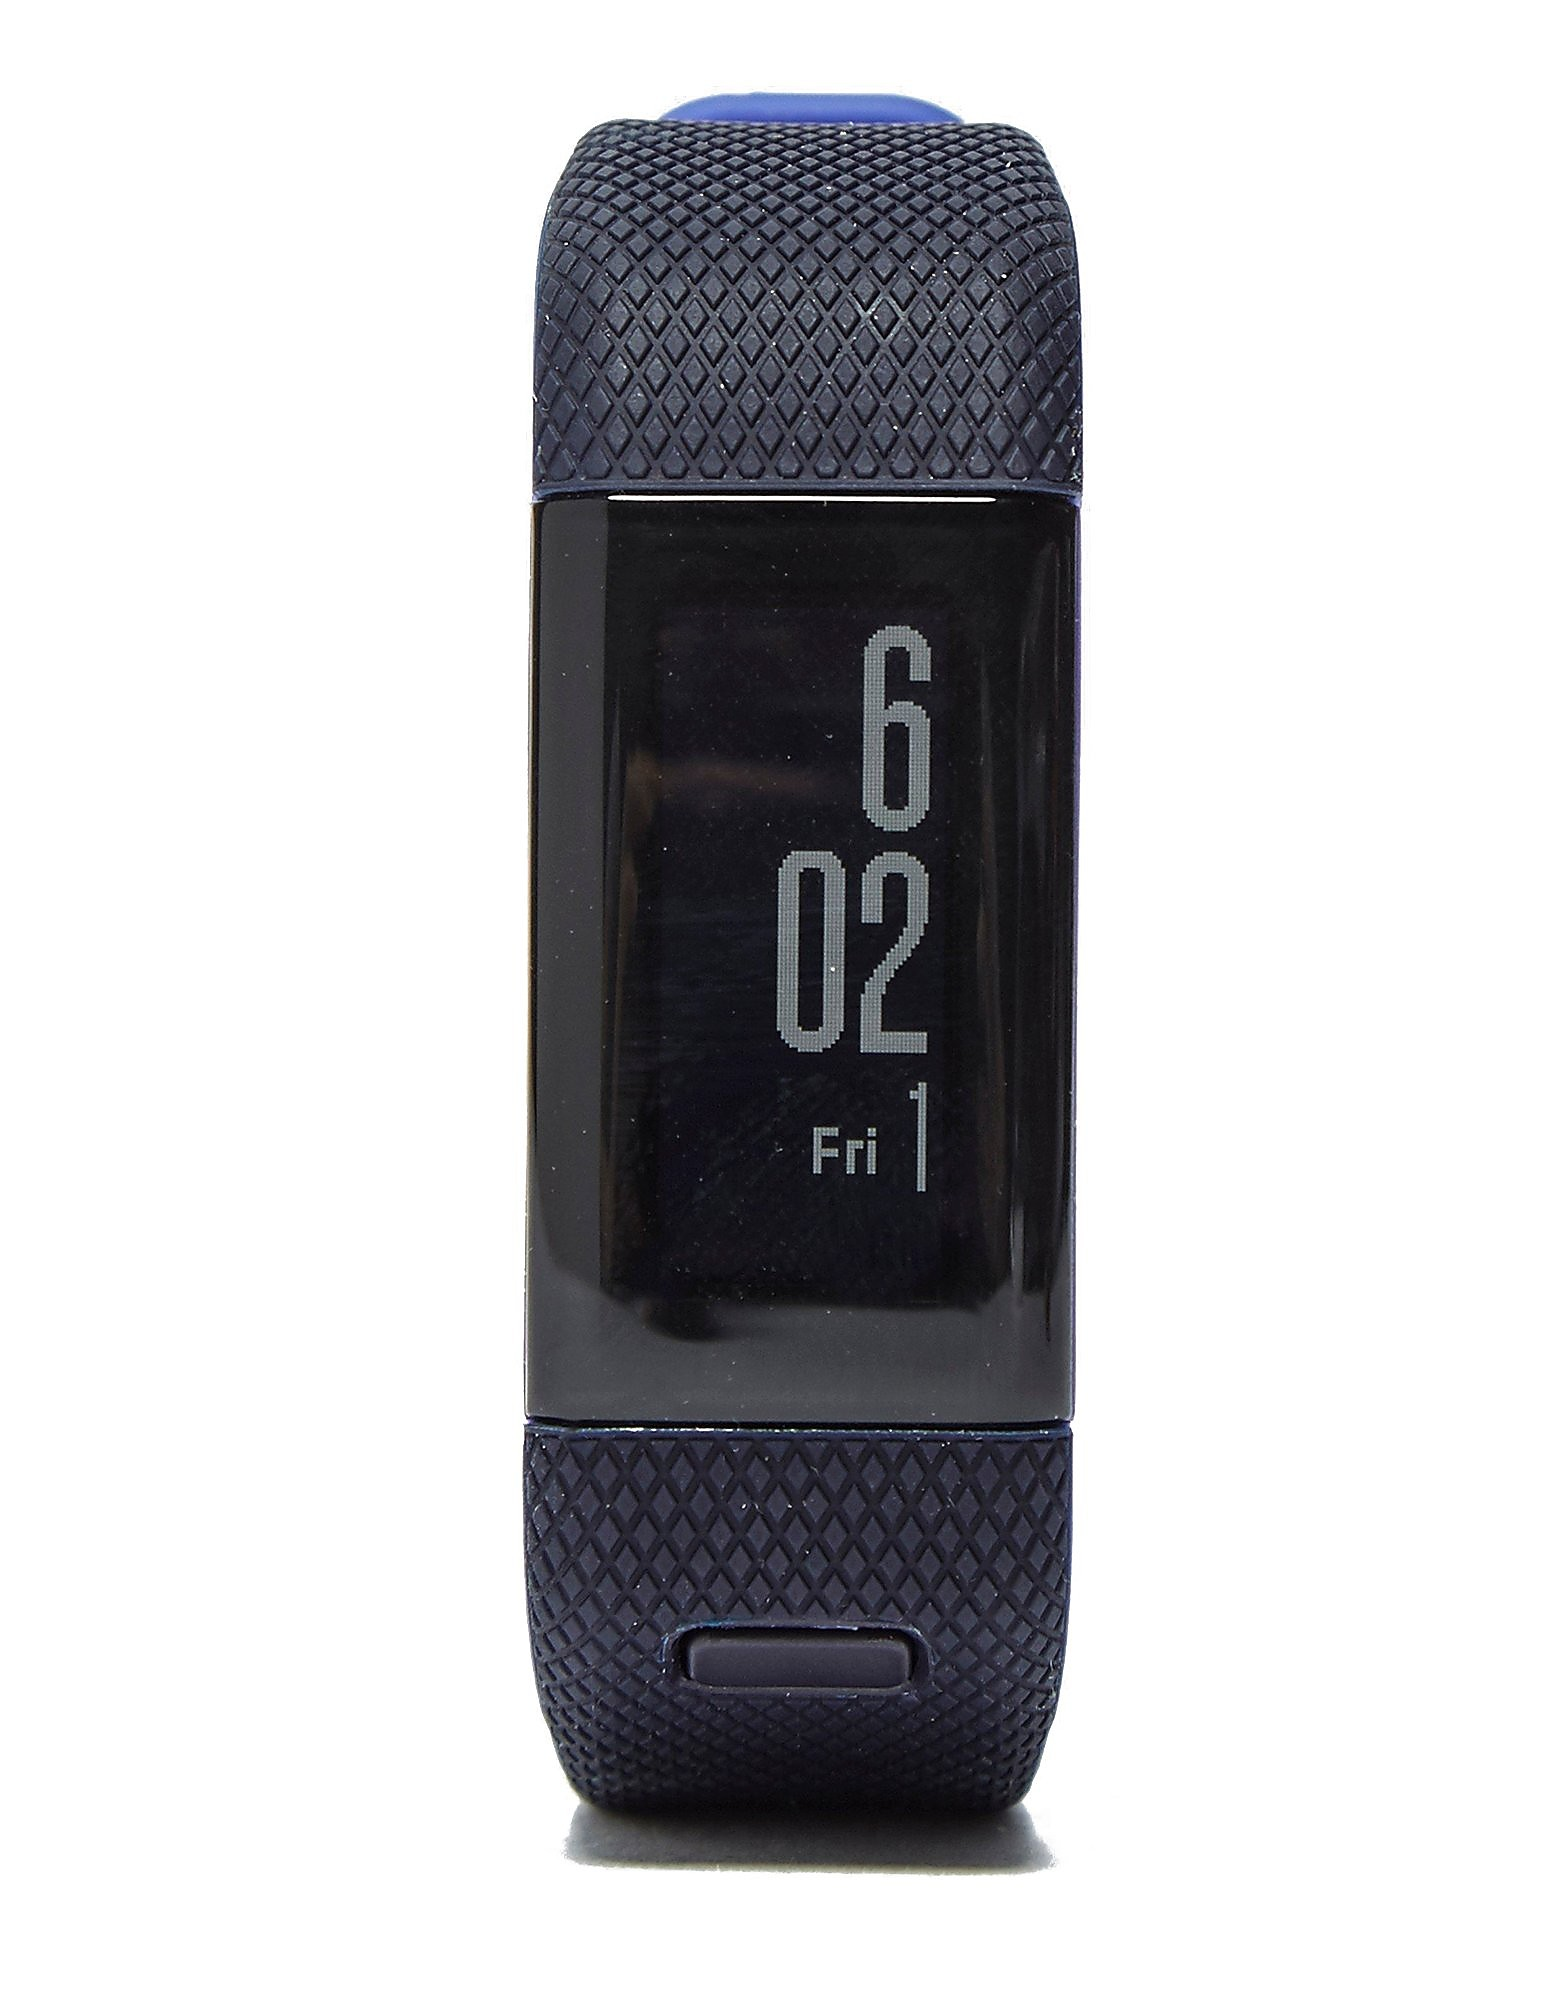 Garmin Vivosmart Activity Tracker